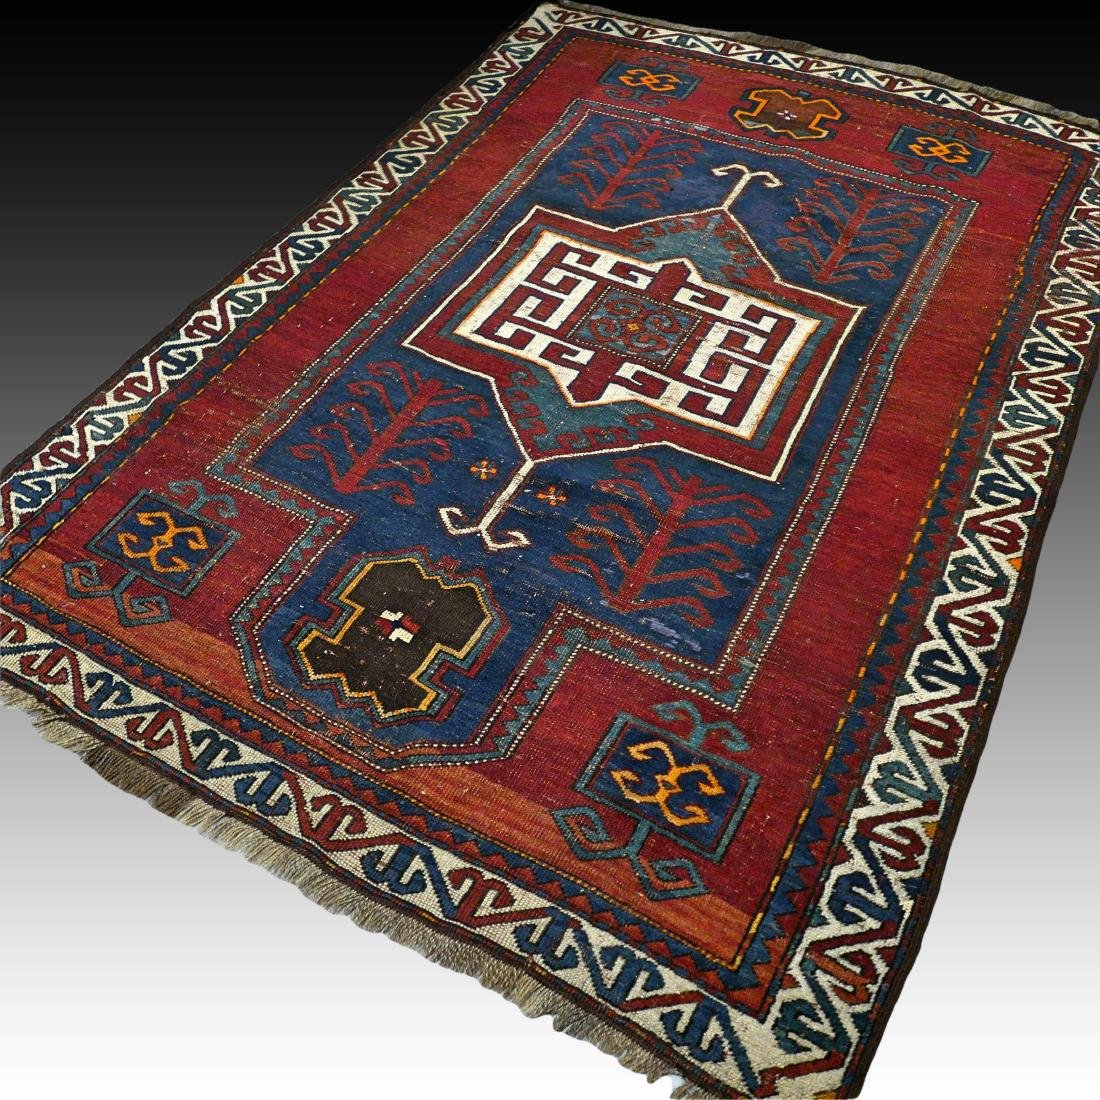 6.6 x 4.6 Caucasian Kazak rug - early 1900s - - 2